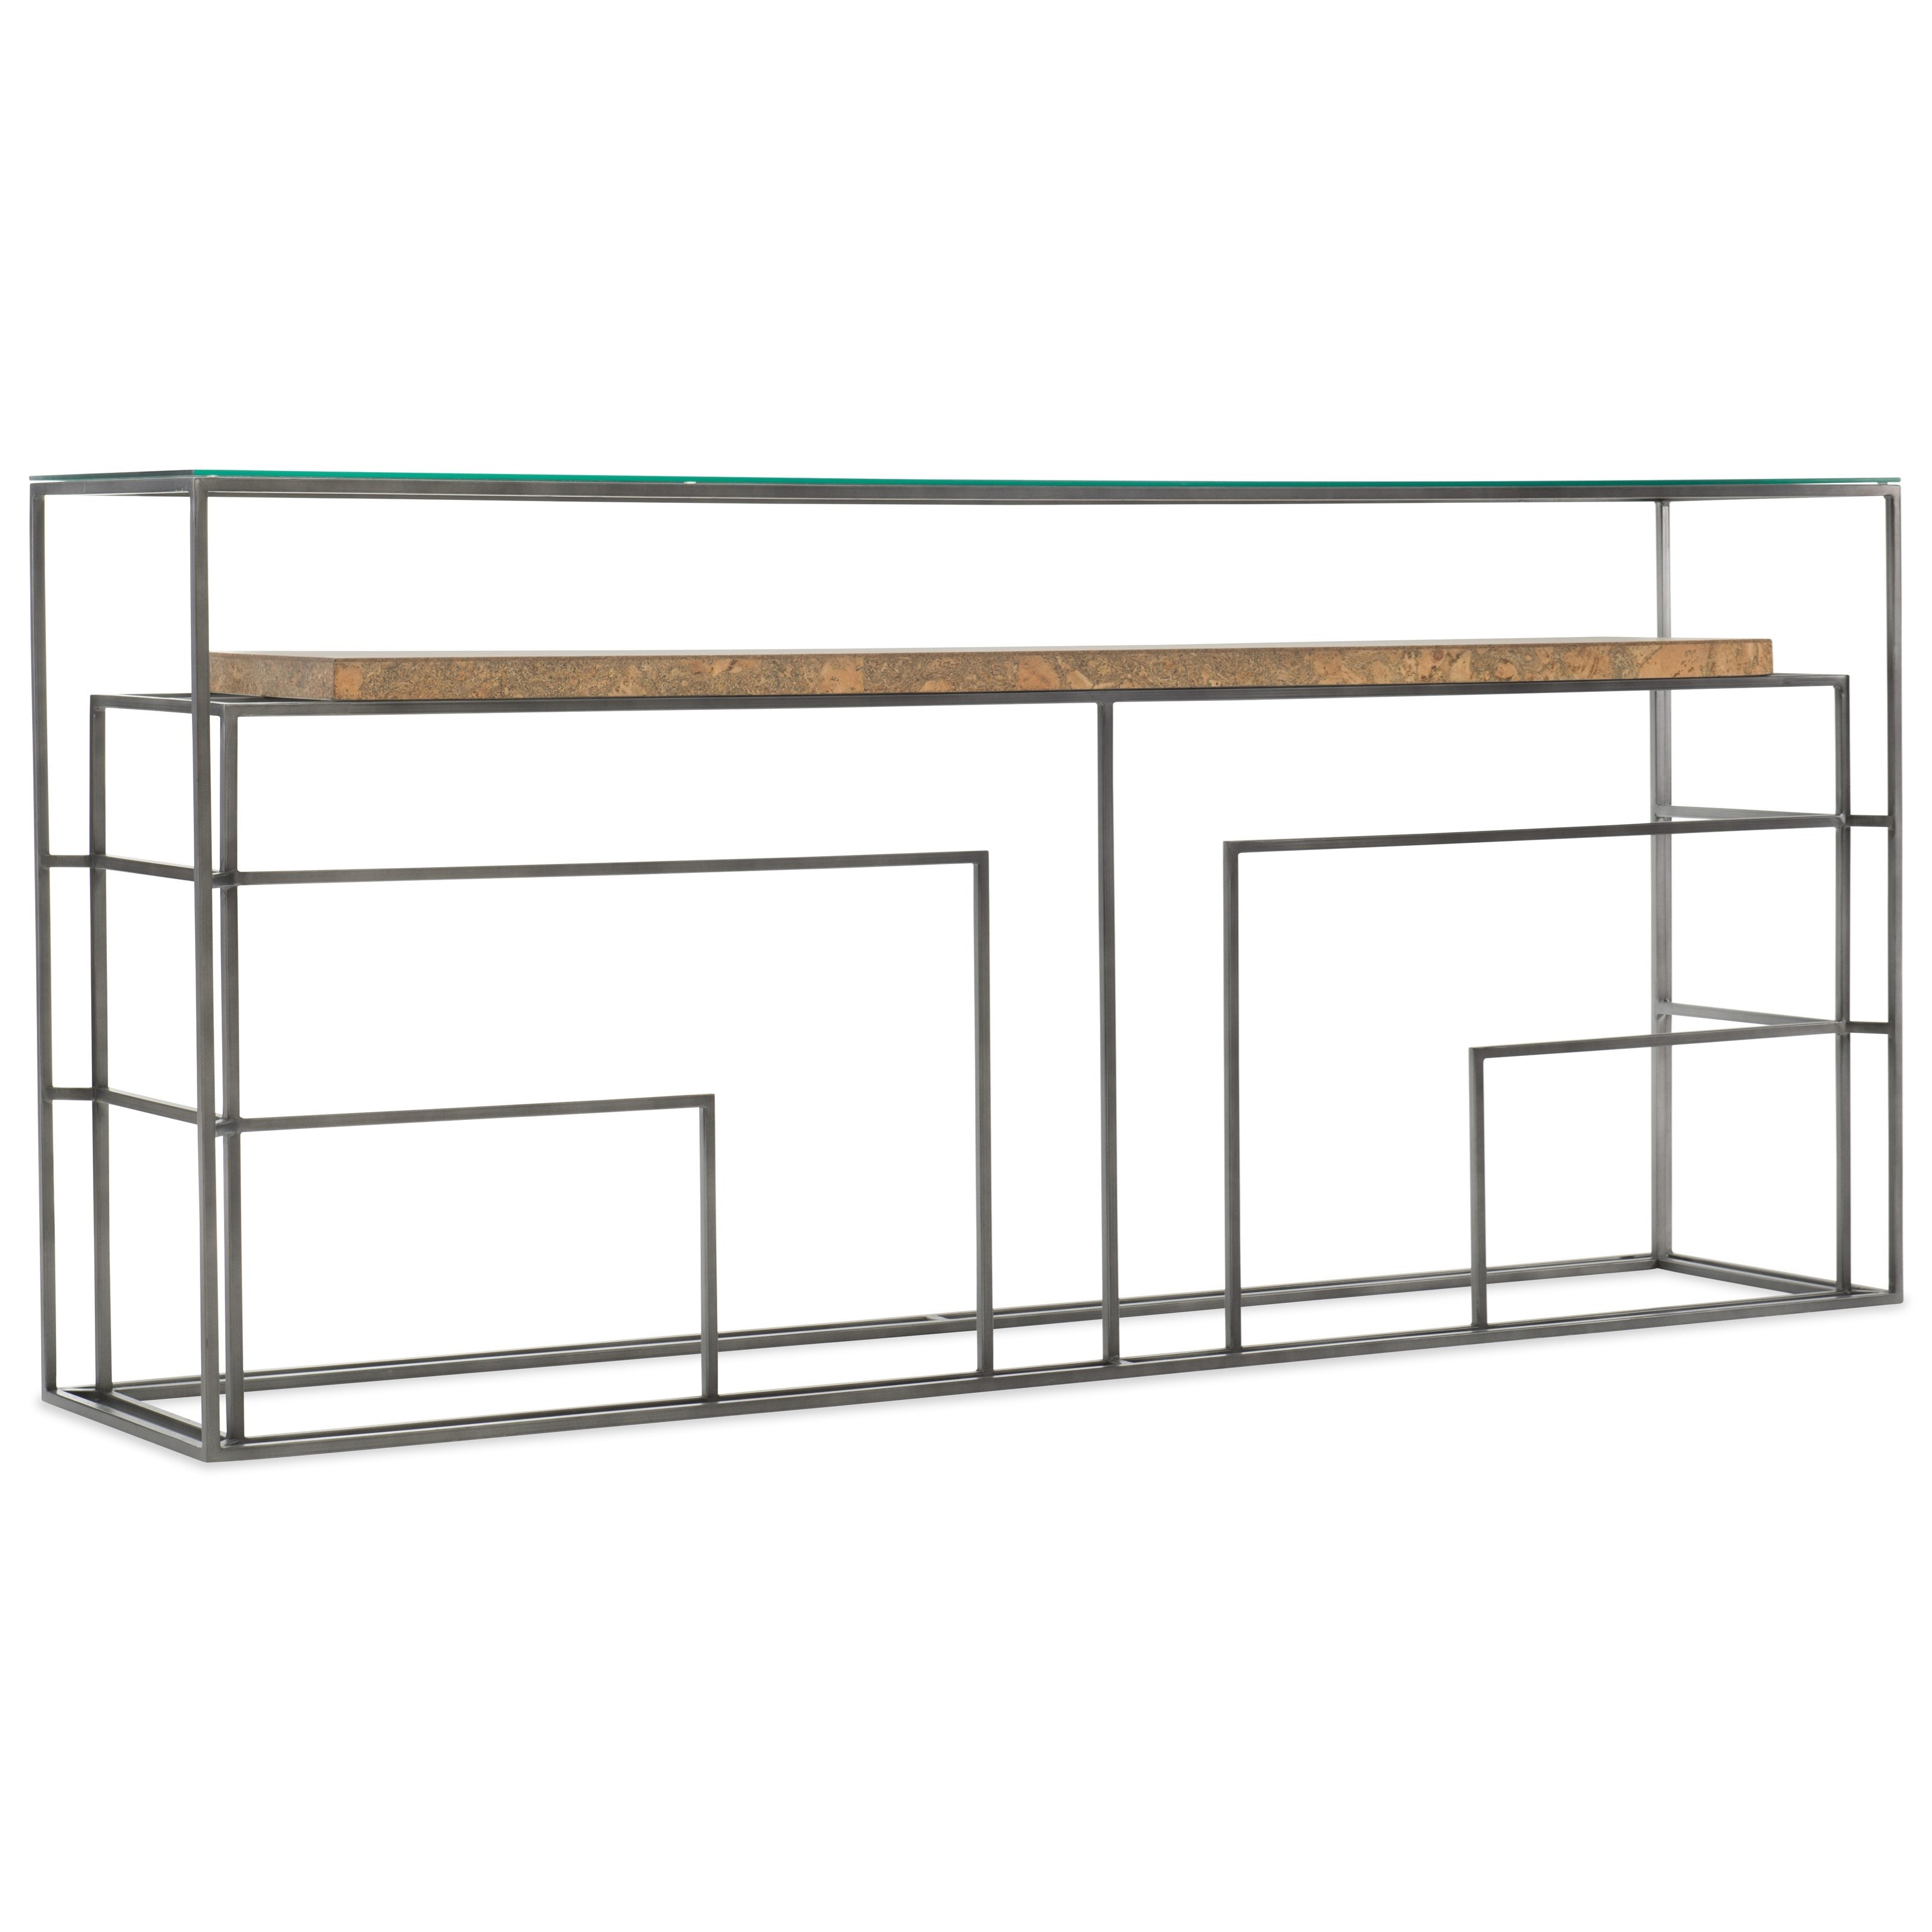 5645-80 Sofa Table by Hooker Furniture at Corner Furniture